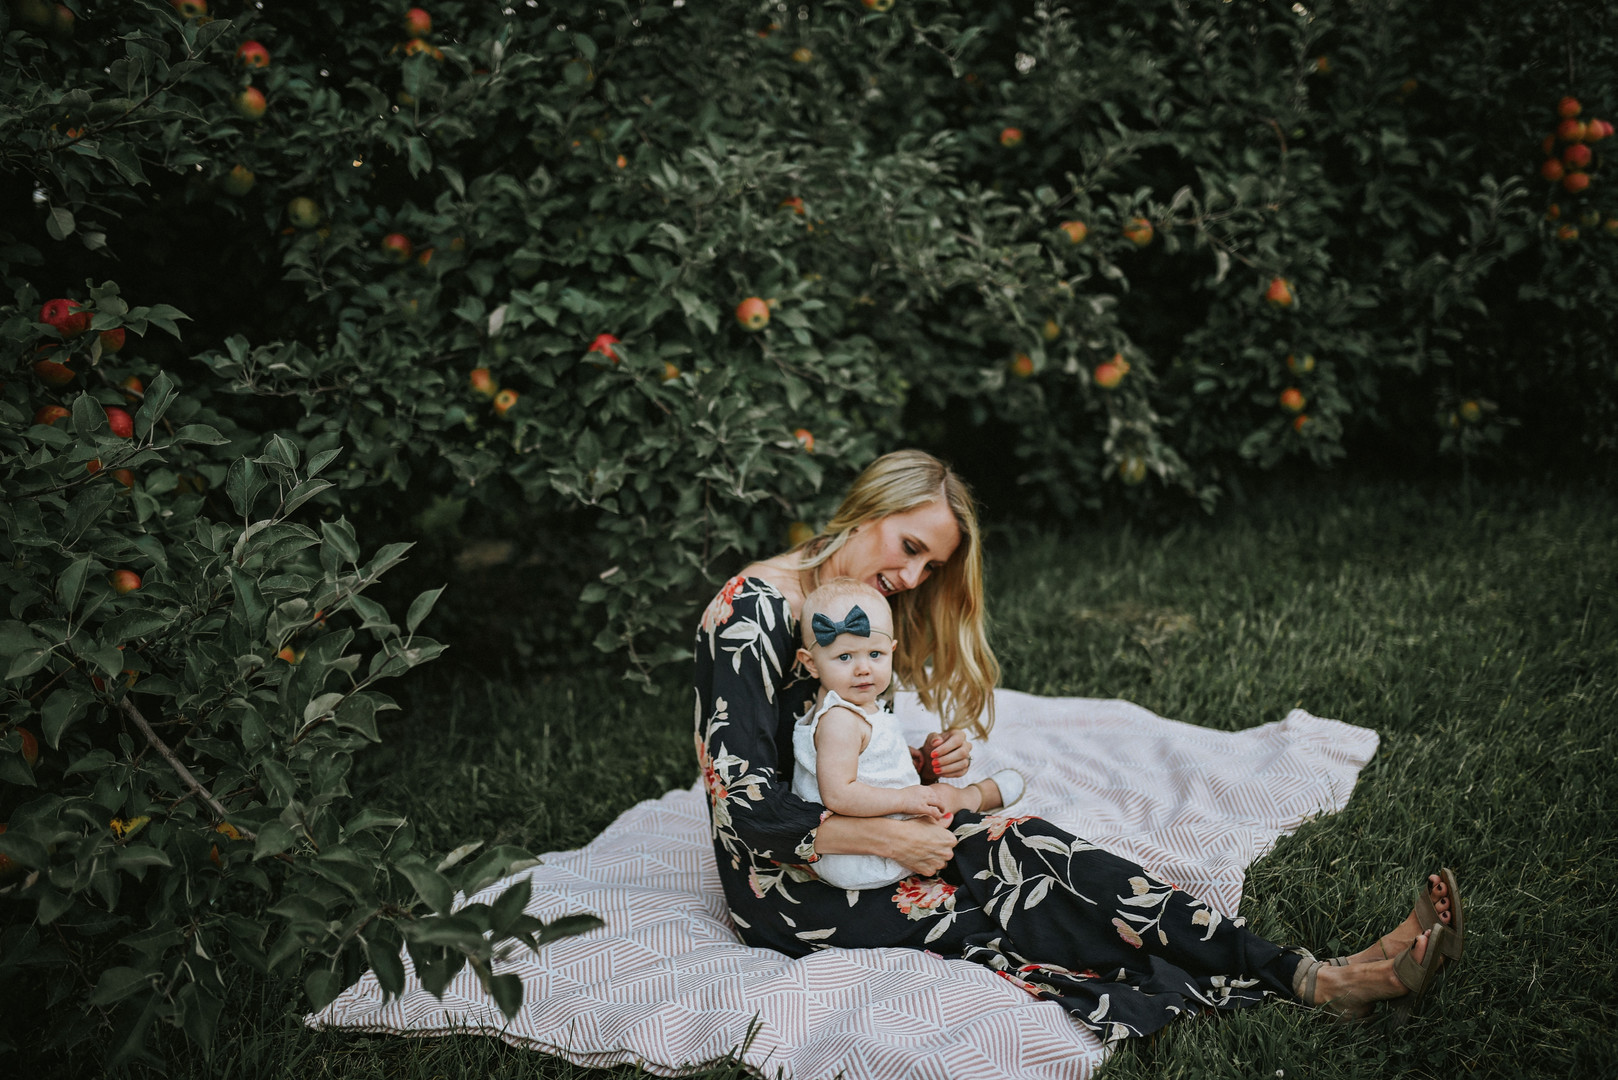 Trempealeau Wisconsin Outdoor Unposed Lifestyle Family Photographer Apple OrchardDSC_6177.jpg